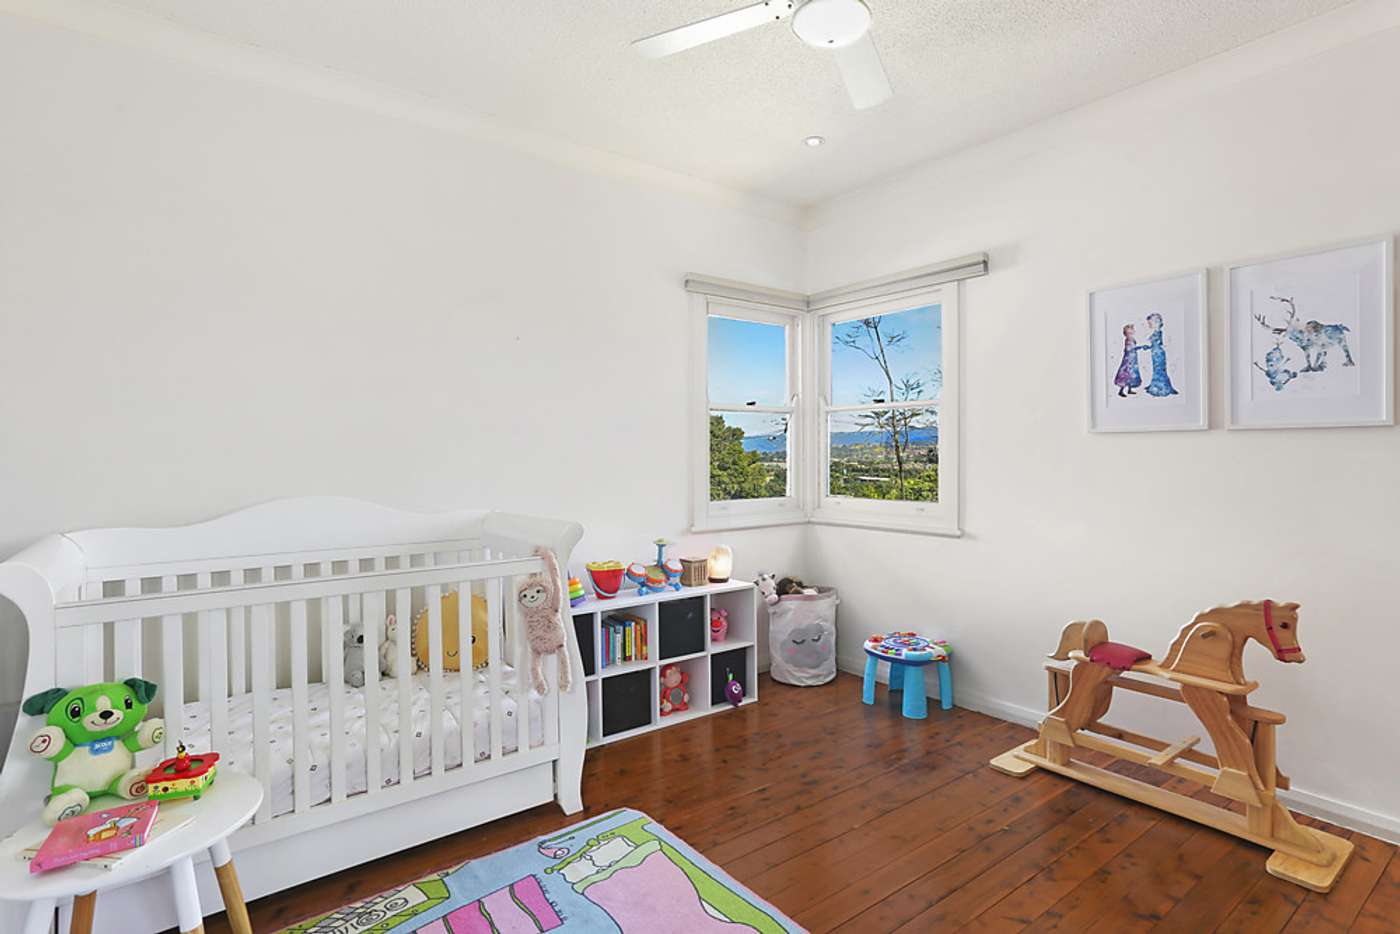 Sixth view of Homely house listing, 5 Mount Street, Mount Saint Thomas NSW 2500